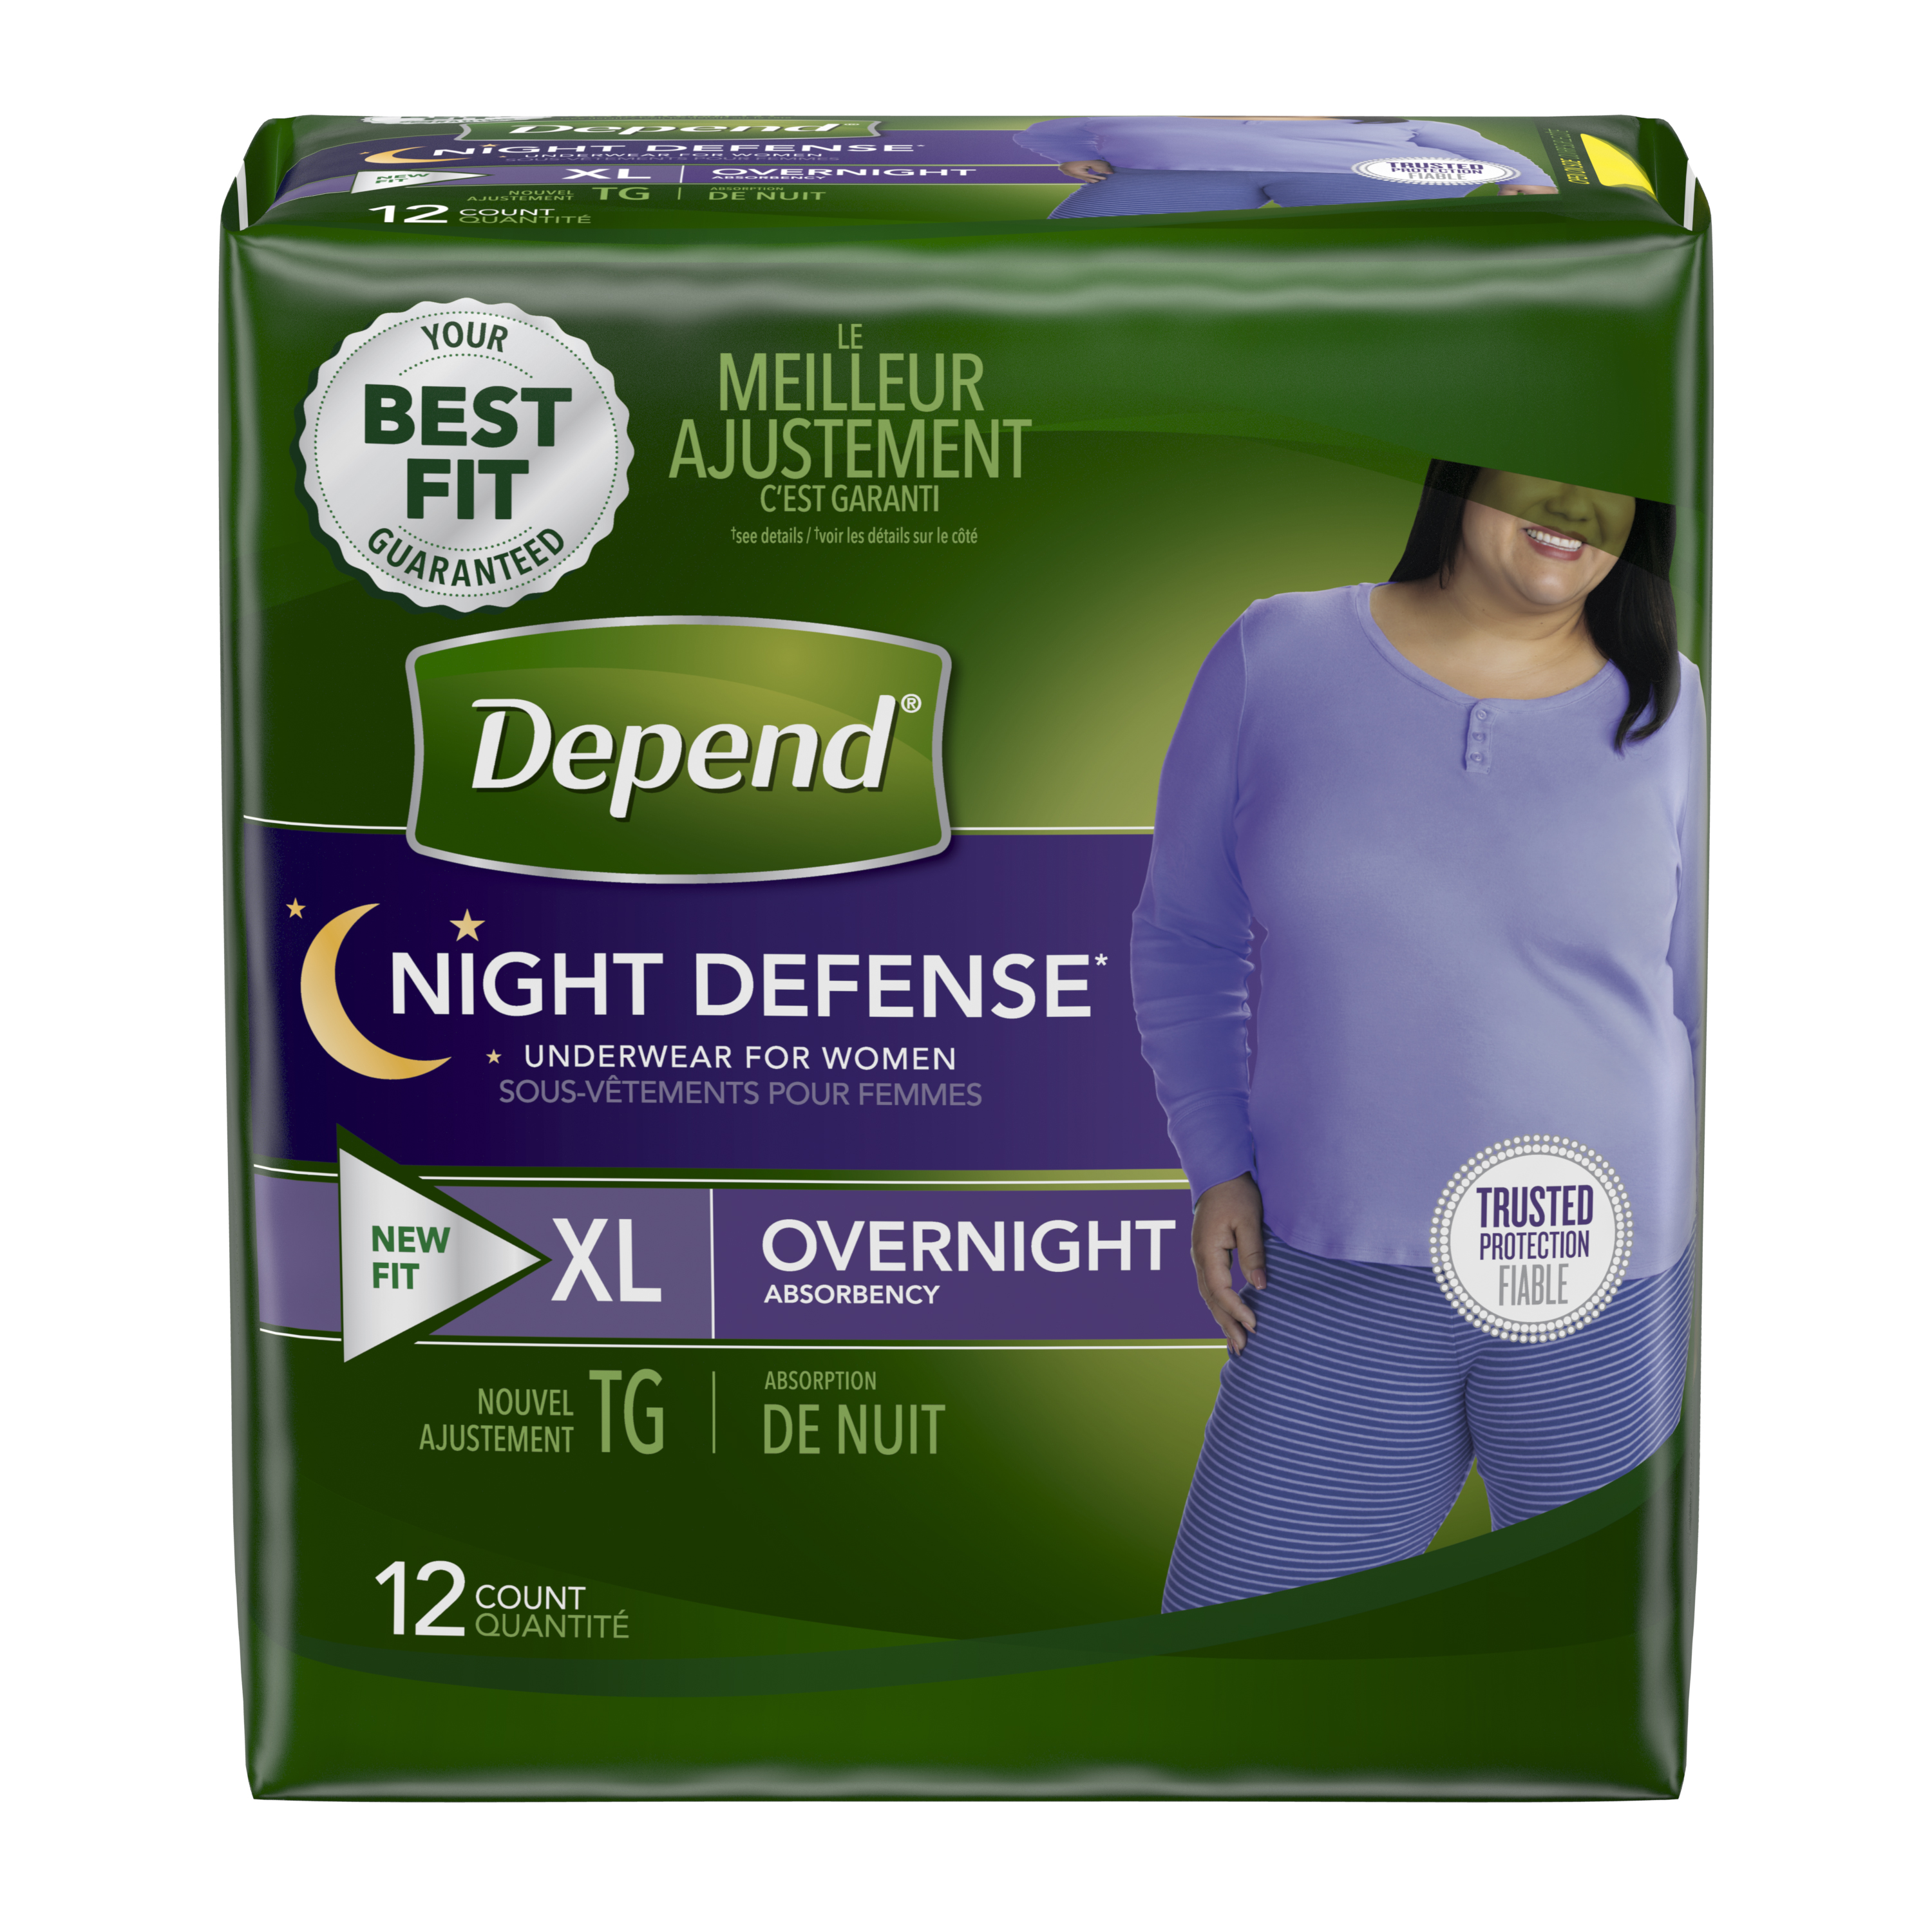 Depend Night Defense Incontinence Overnight Underwear for Women, XL, 12 Ct